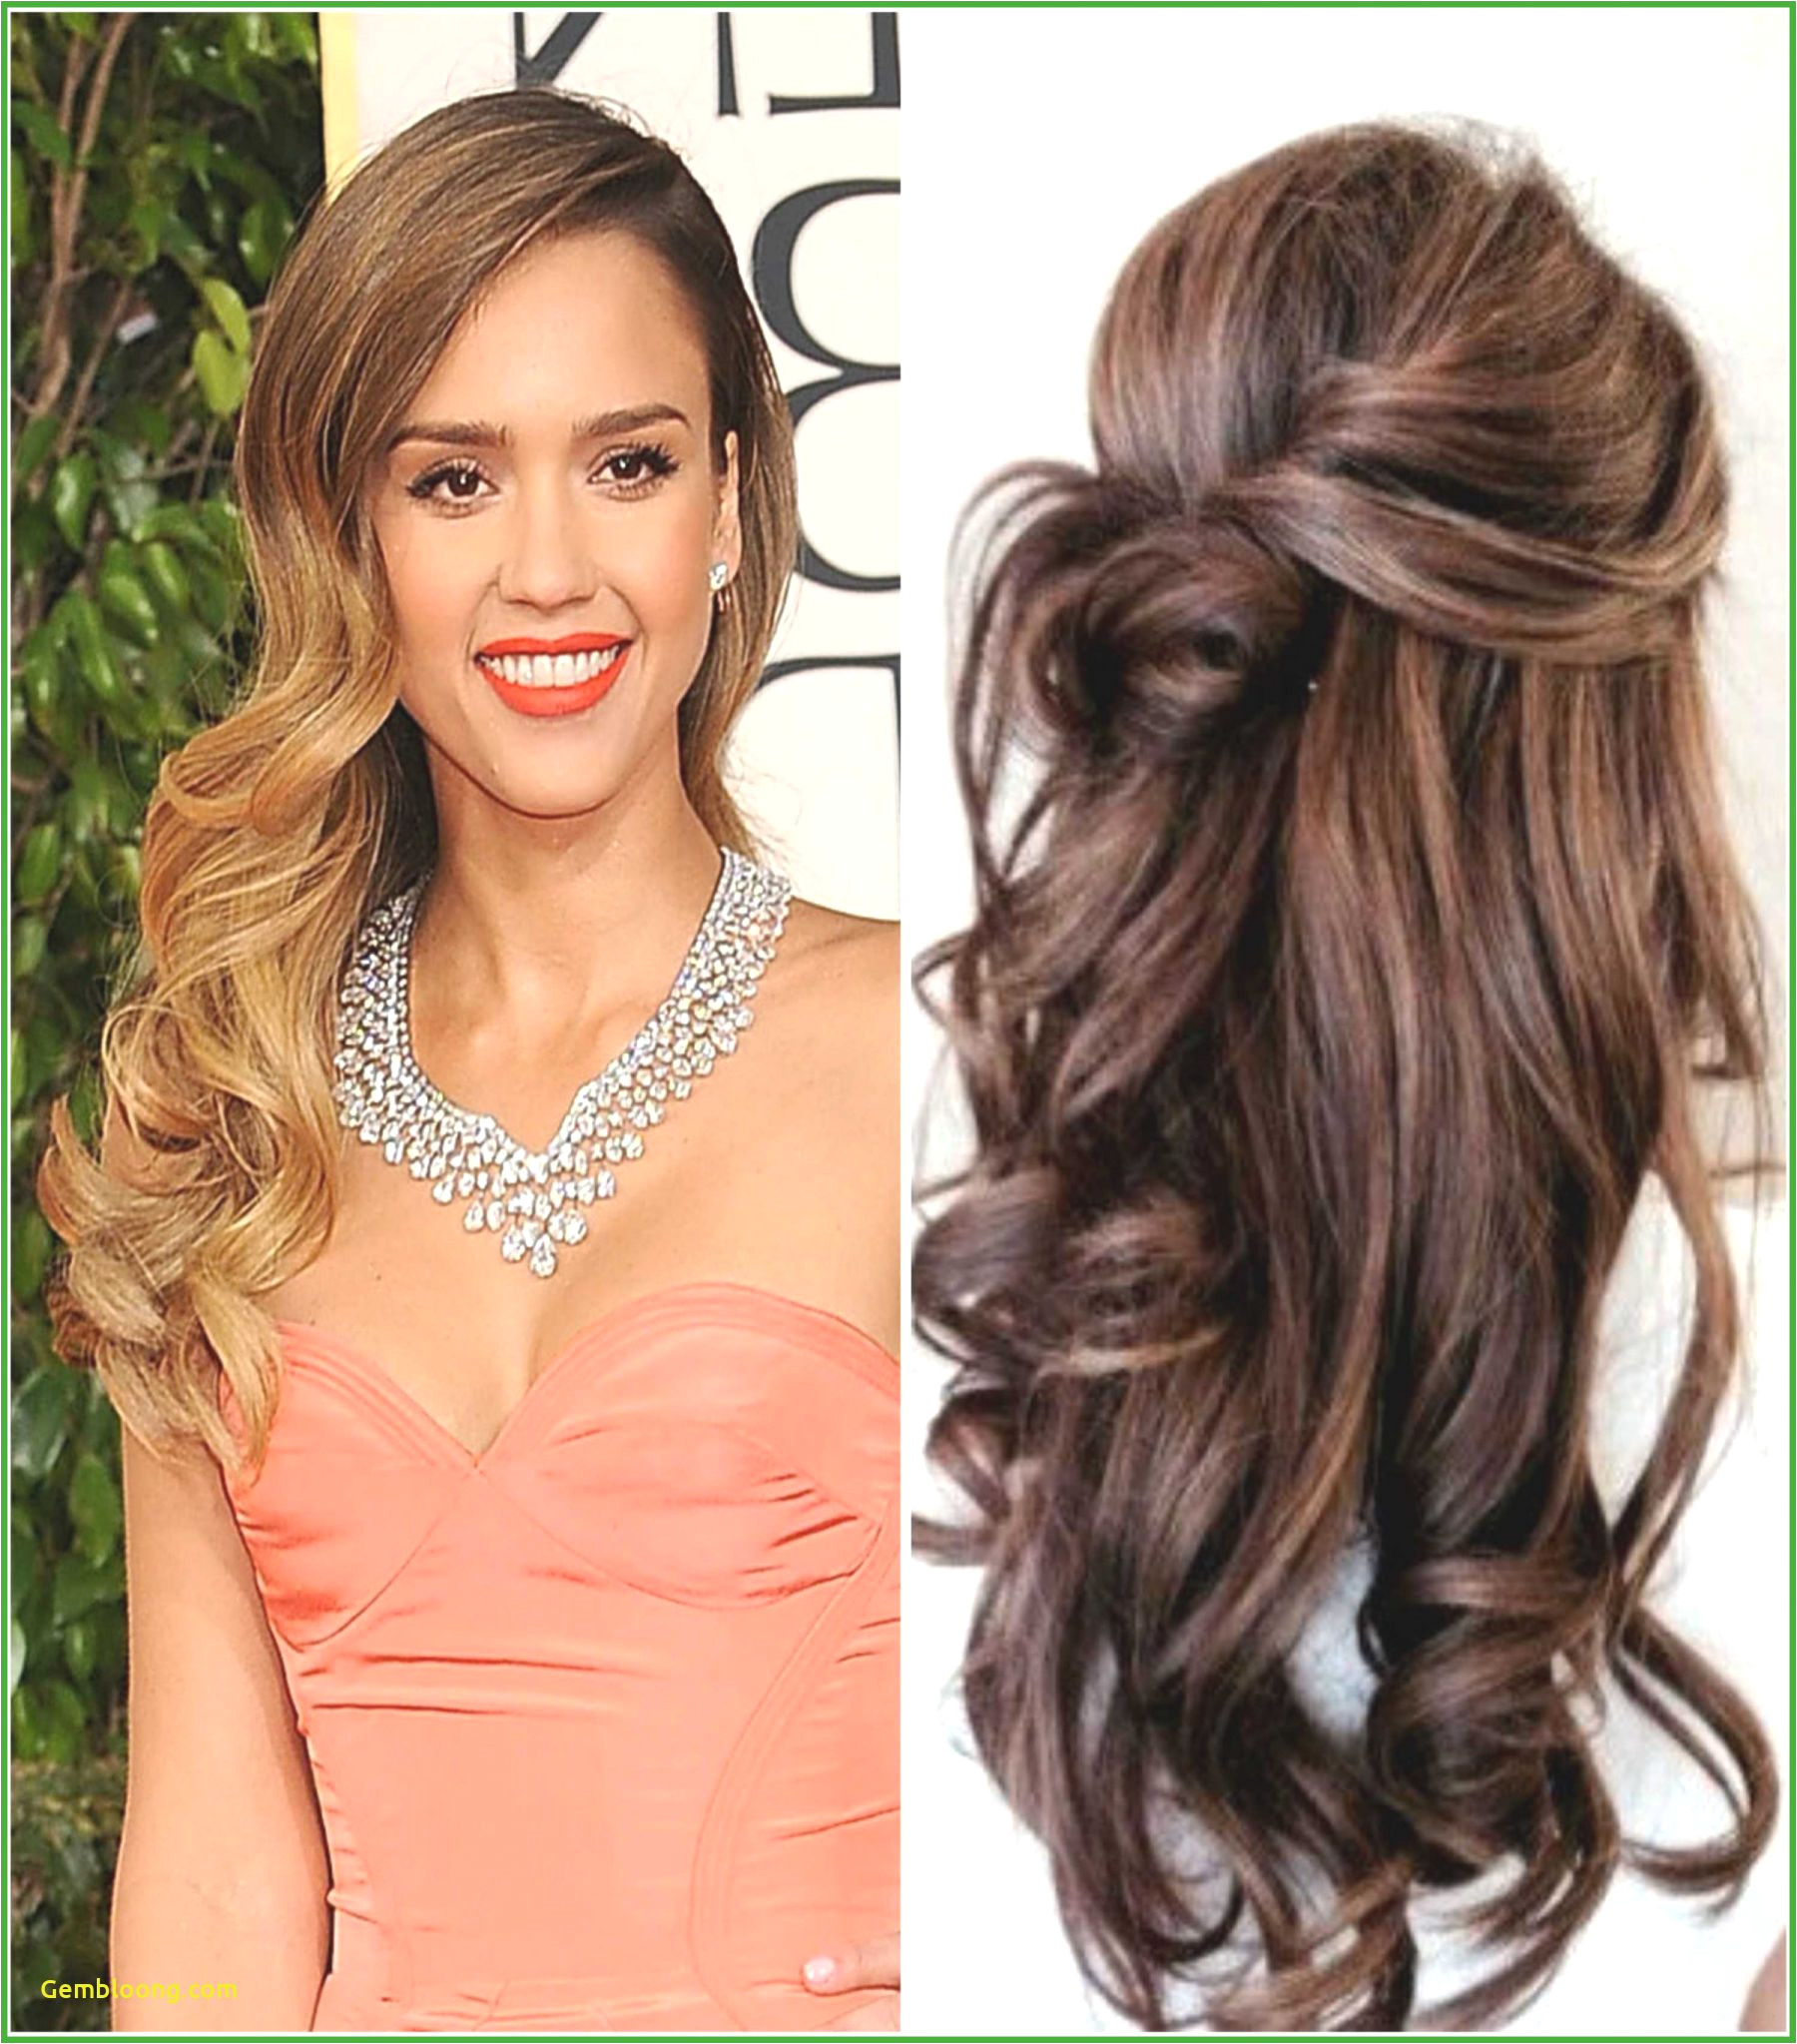 Hairstyles for School Presentation Appearance